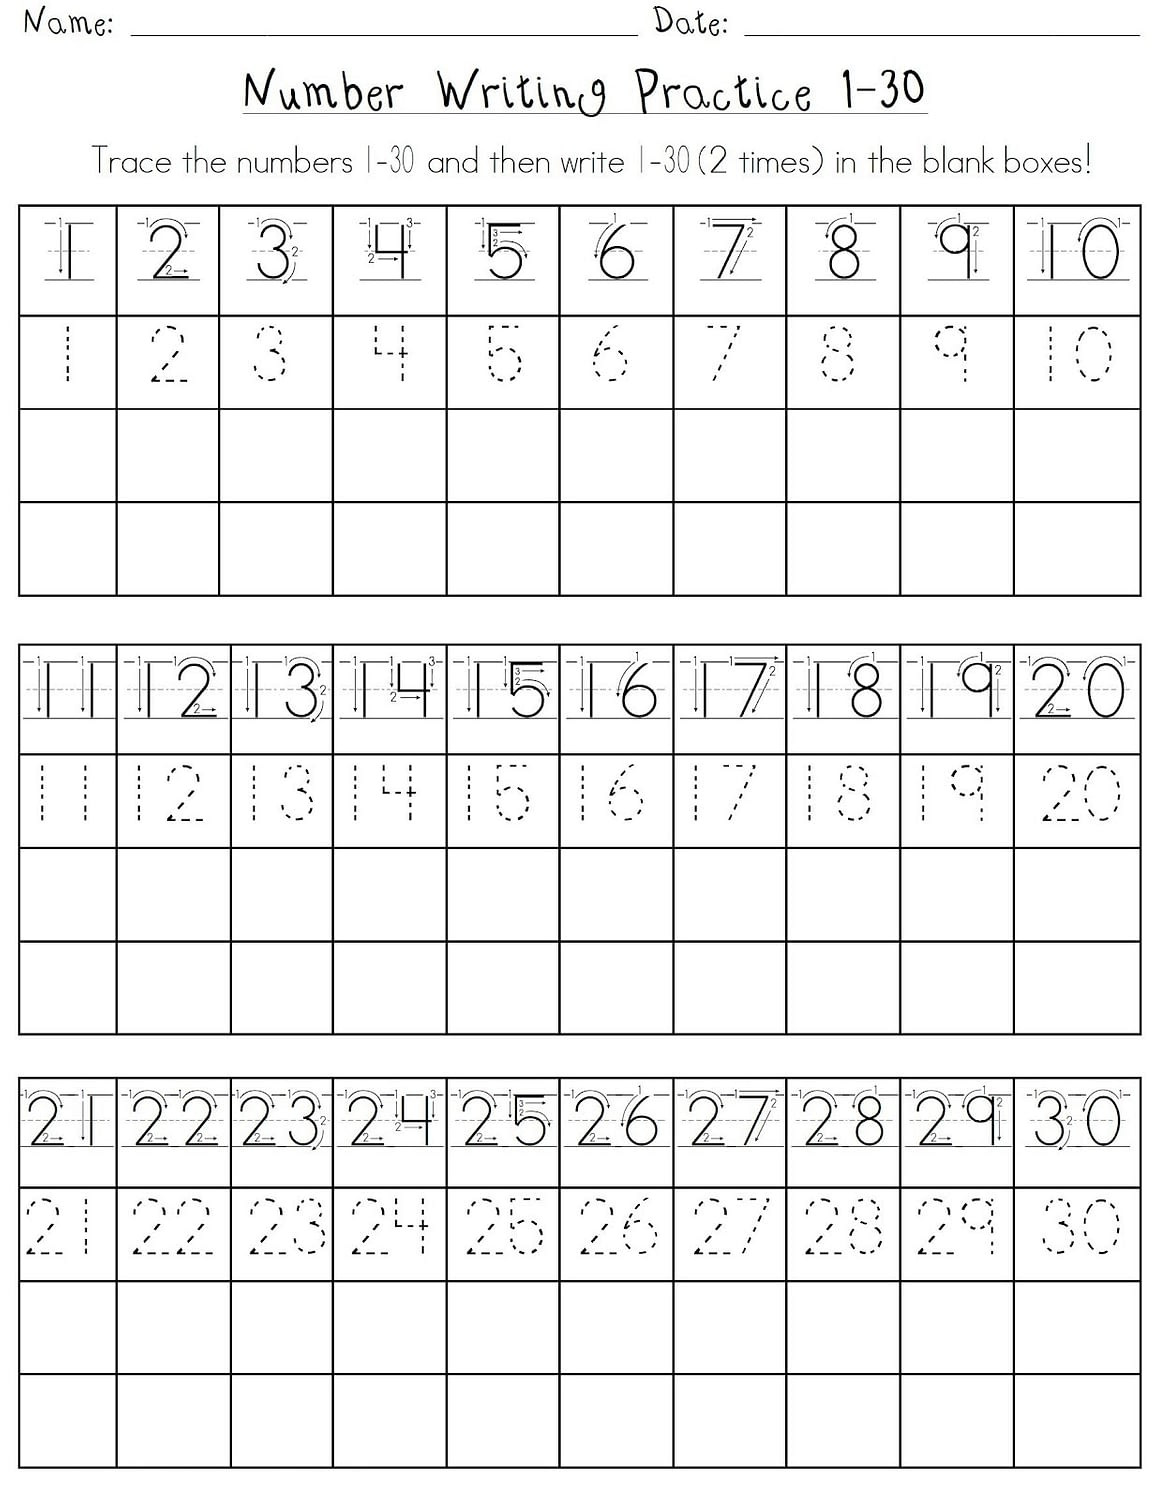 Tracing Numbers 1 20 Printable Printable Number Tracing Worksheets